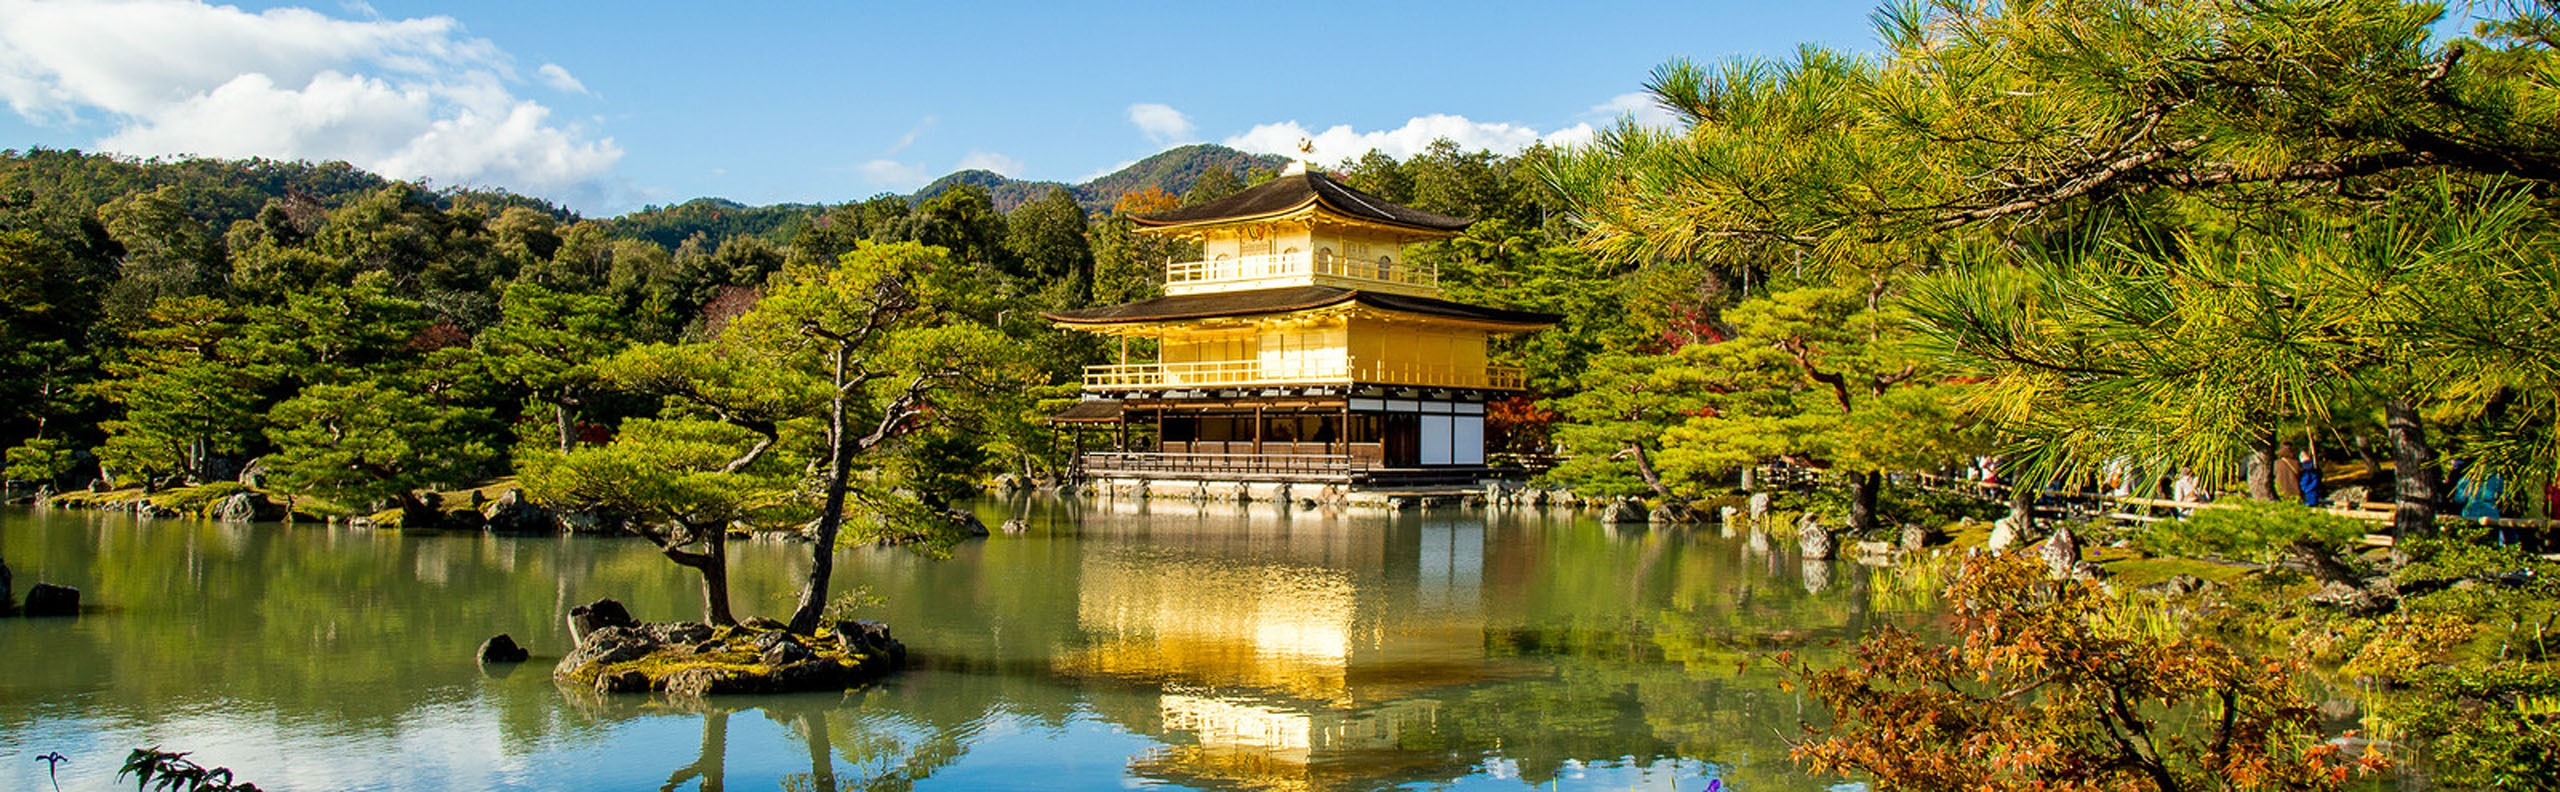 Guide to Temples in Japan